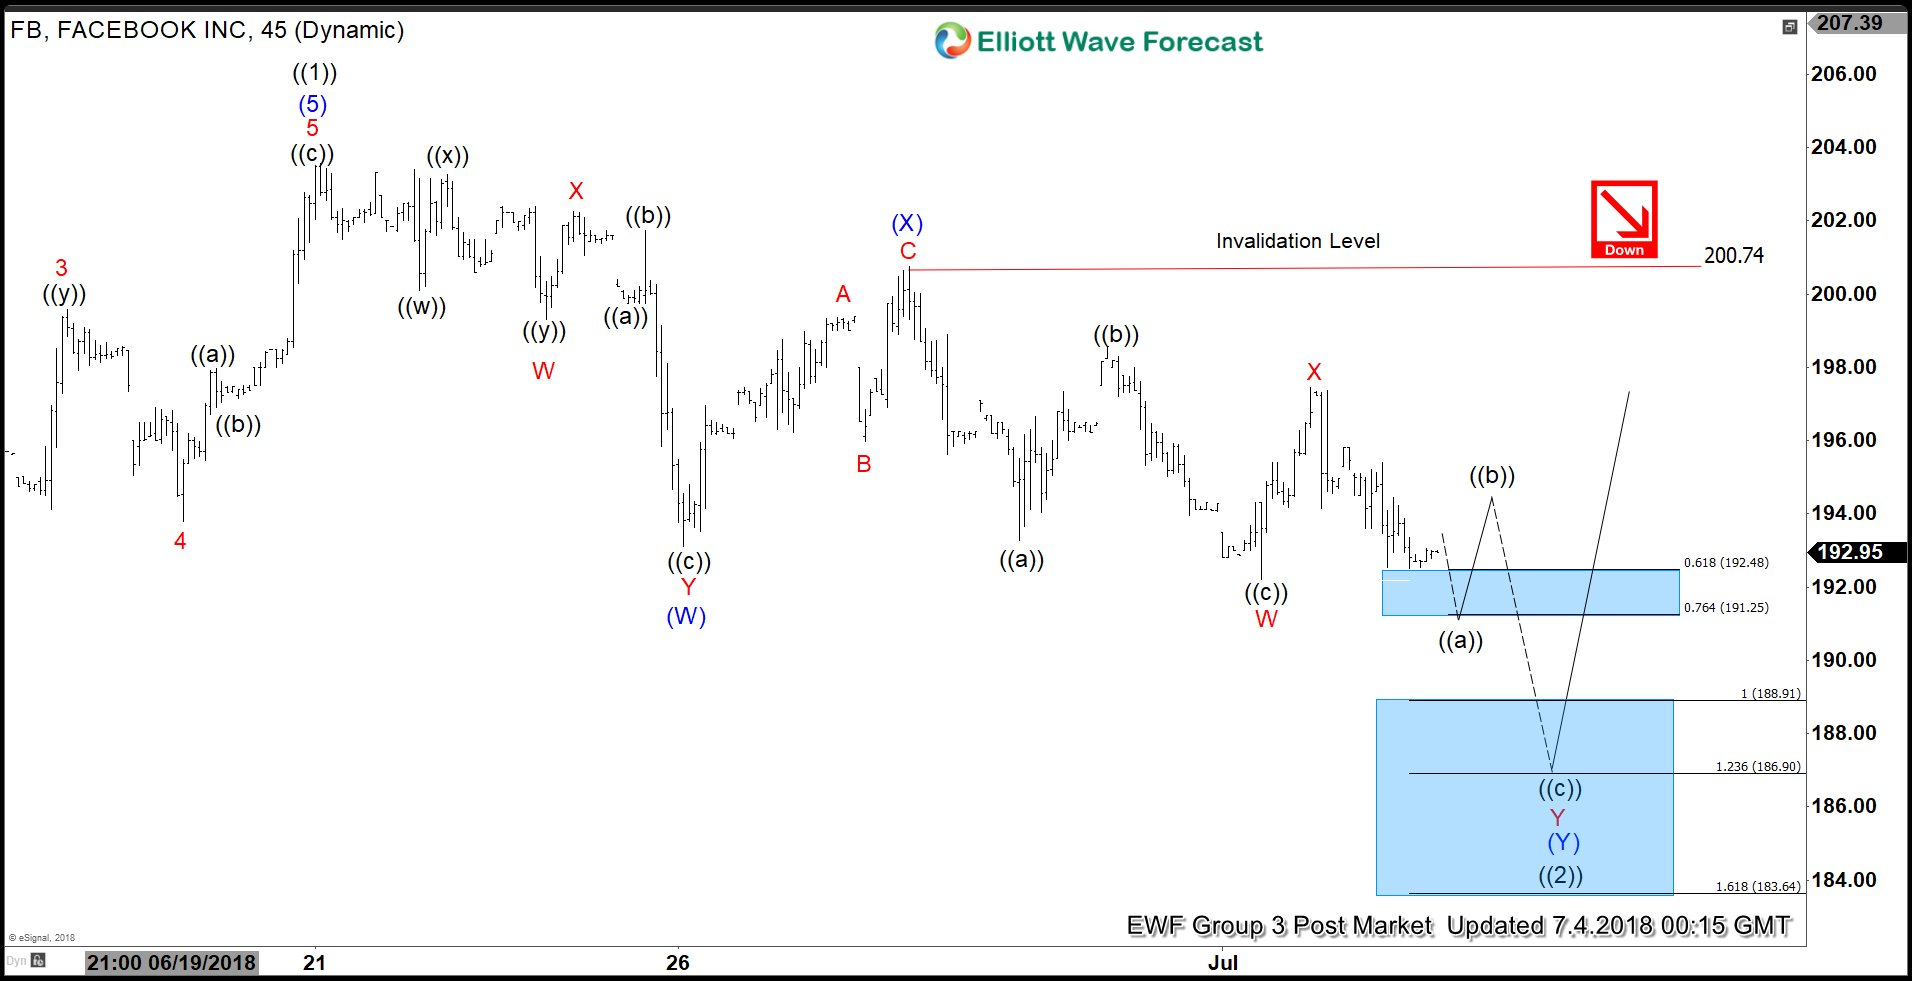 Facebook ($FB) Elliott Wave Analysis: Pullback Remains In-progress